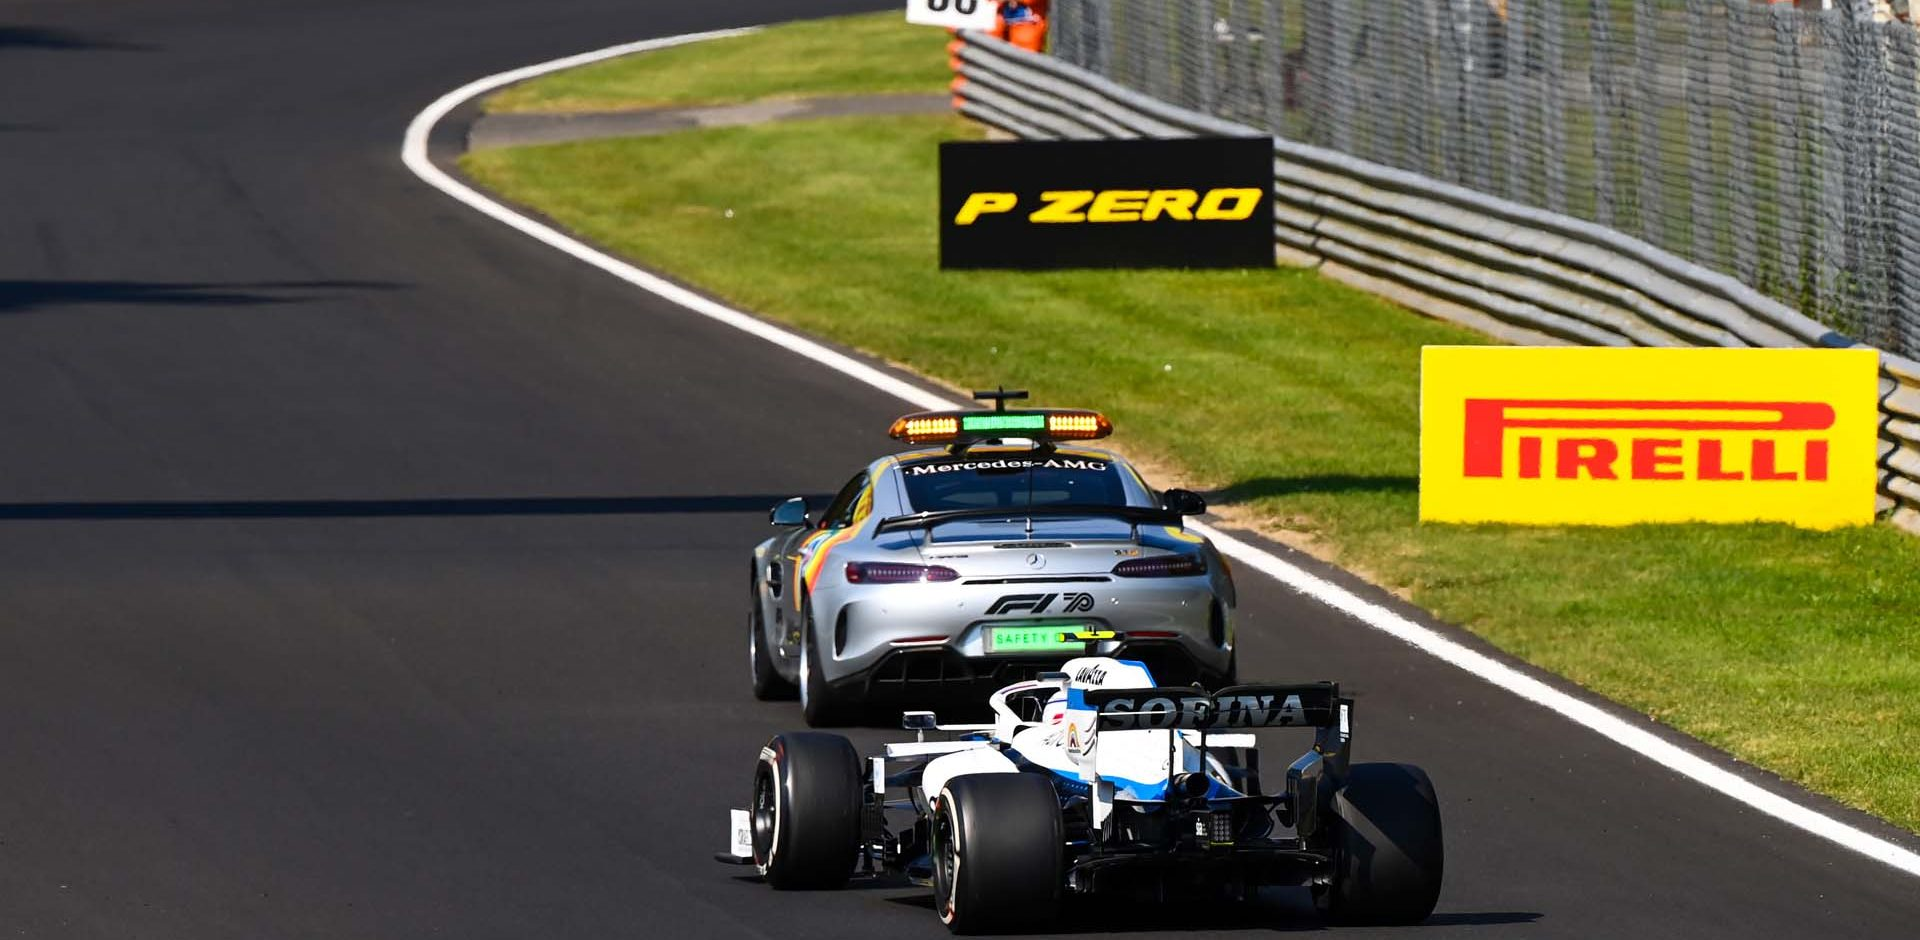 AUTODROMO NAZIONALE MONZA, ITALY - SEPTEMBER 06: The Safety Car leads Nicholas Latifi, Williams FW43 during the Italian GP at Autodromo Nazionale Monza on Sunday September 06, 2020 in Monza, Italy. (Photo by Mark Sutton / LAT Images)